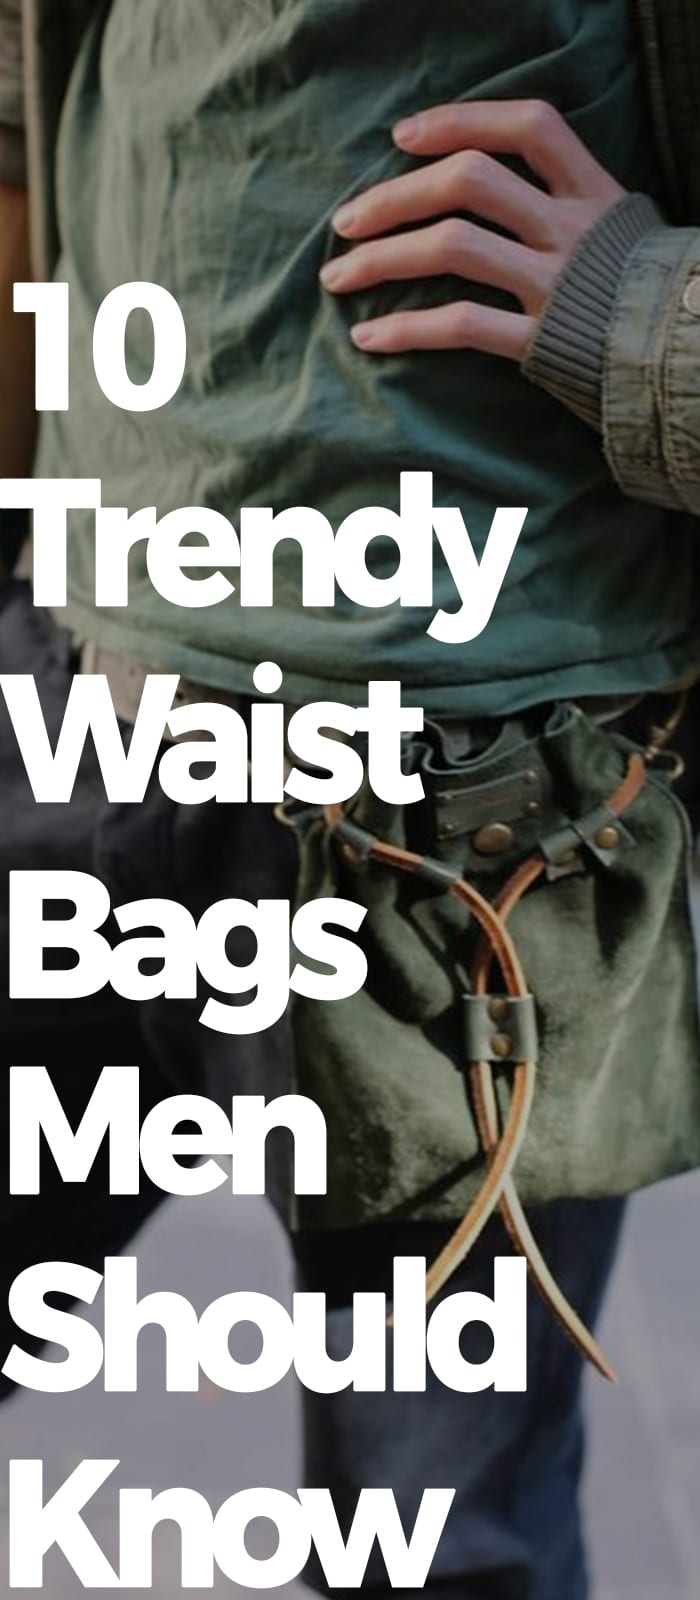 TRENDY WAIST BAGS MEN SHOULD KNOW